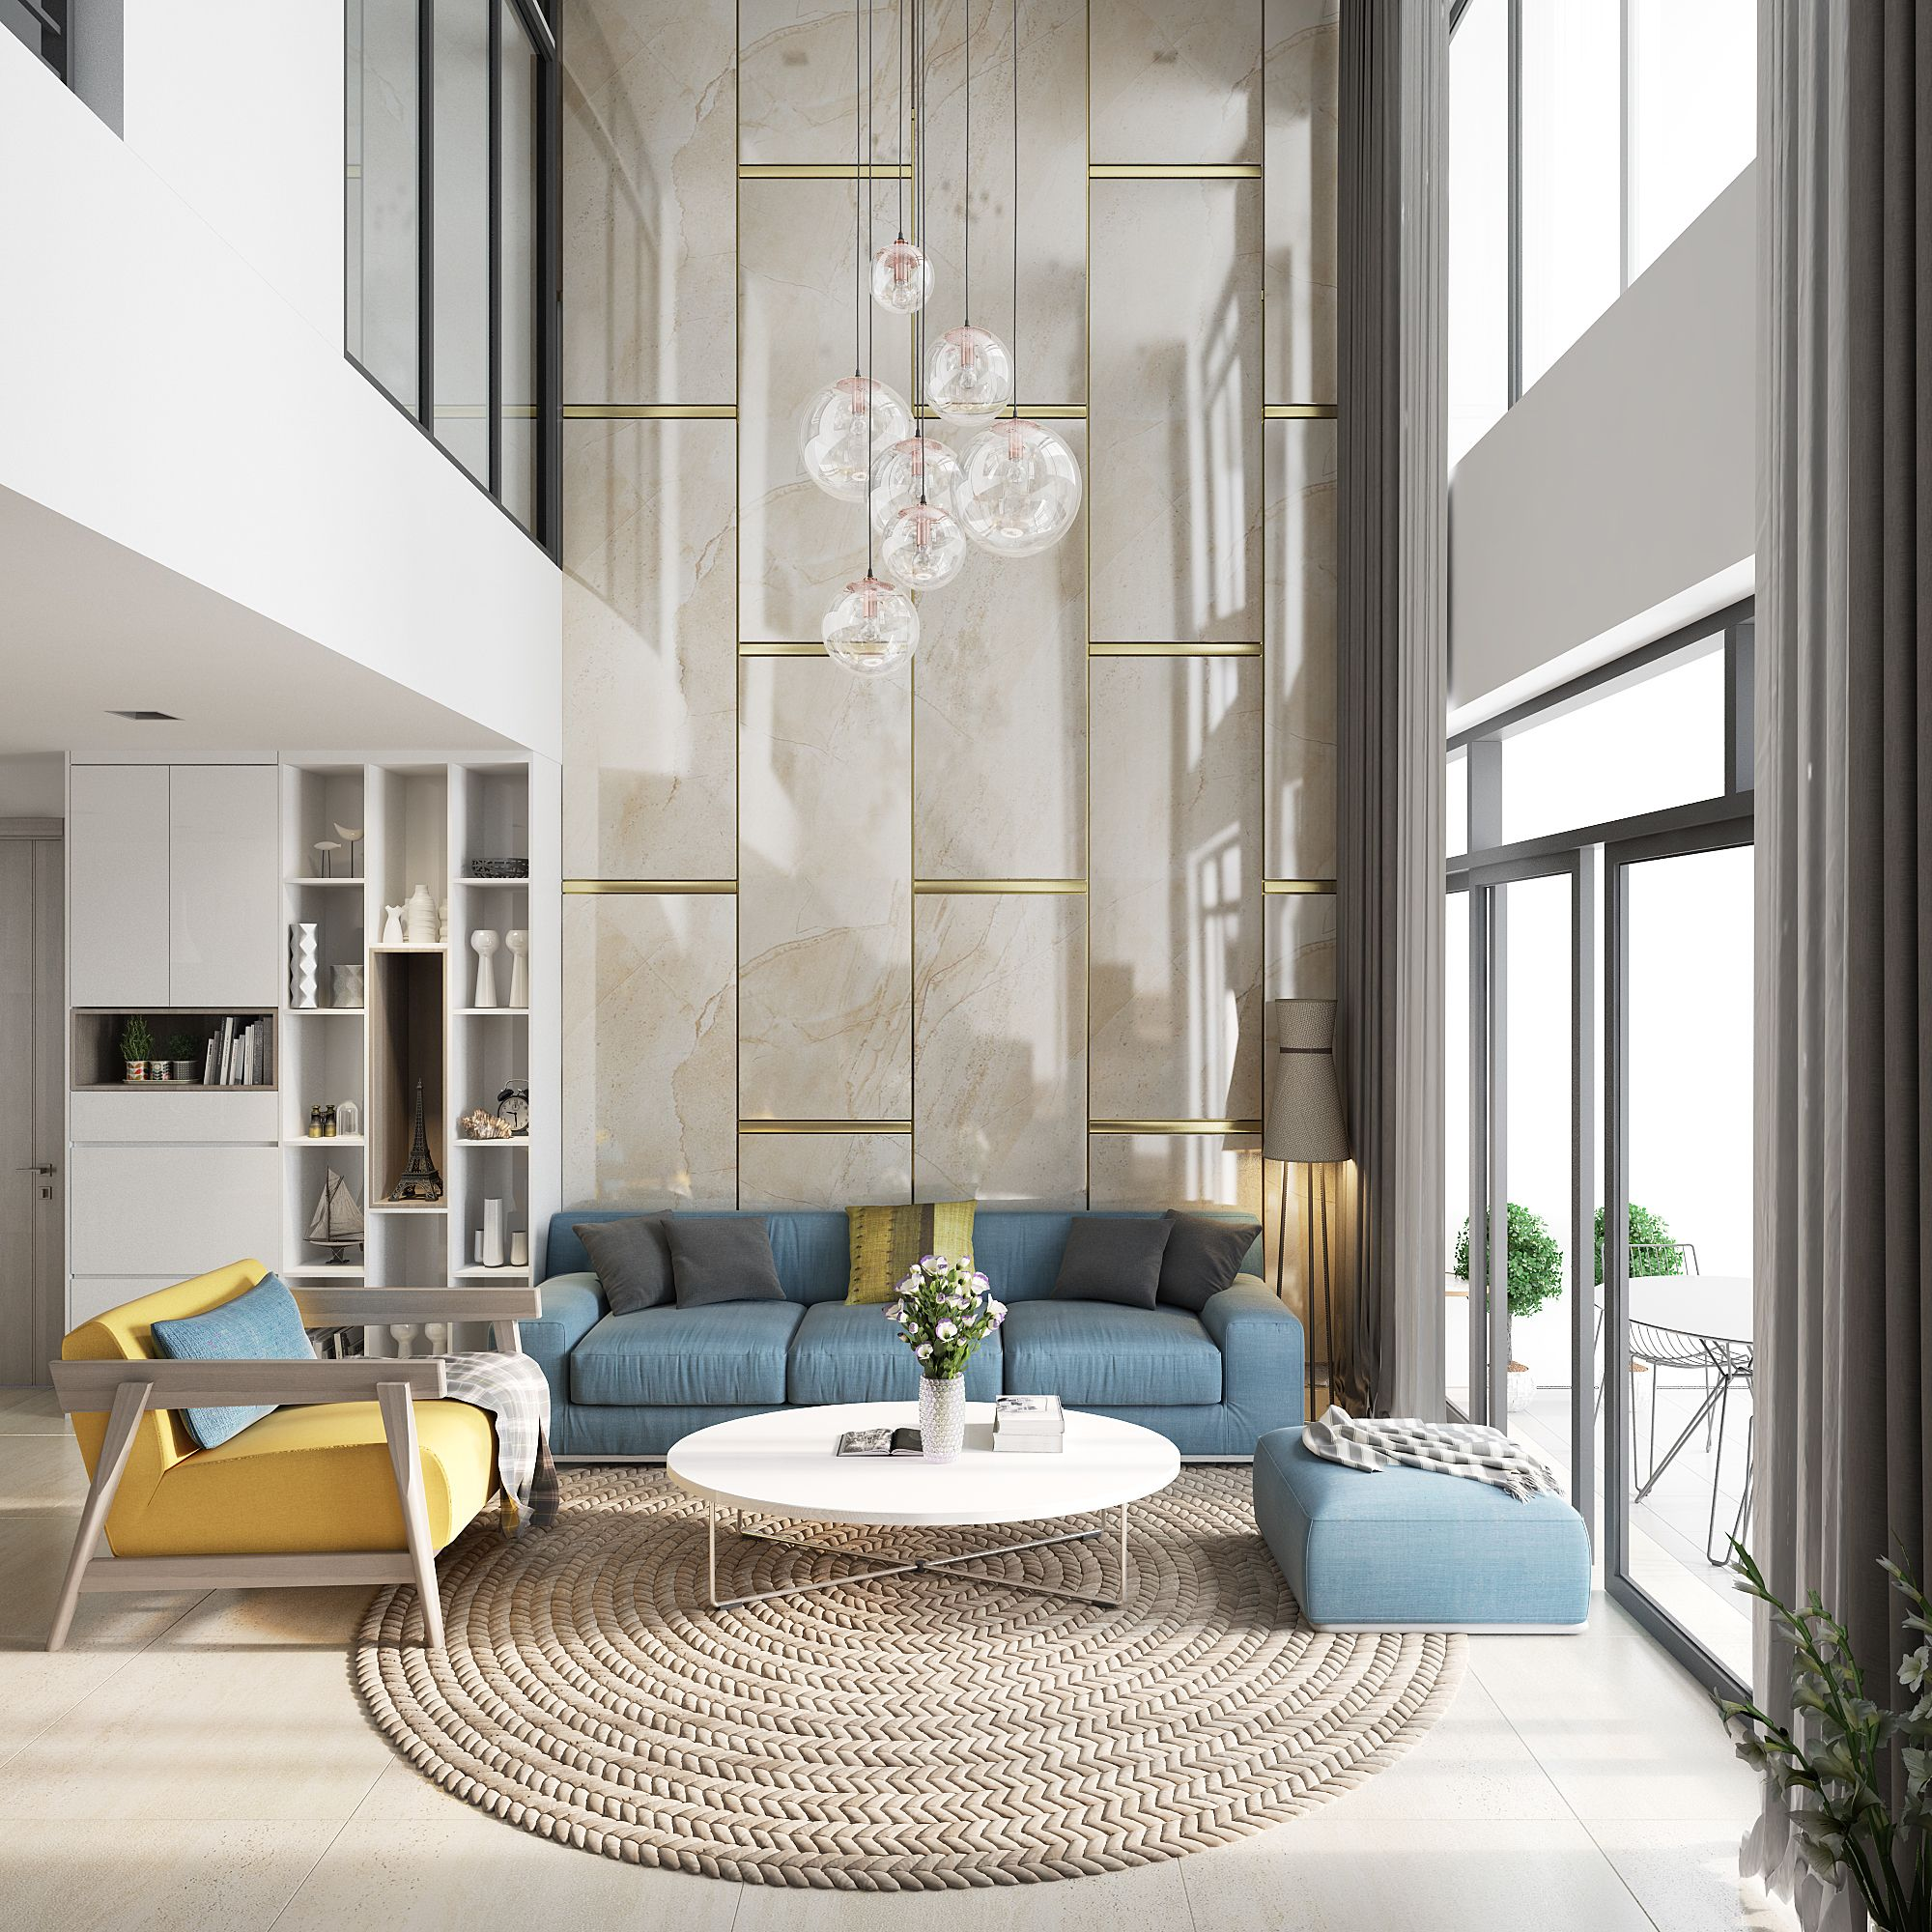 D A T T R A N On Behance Double Height Living Room High Ceiling Living Room Luxury Interior Design Living Room